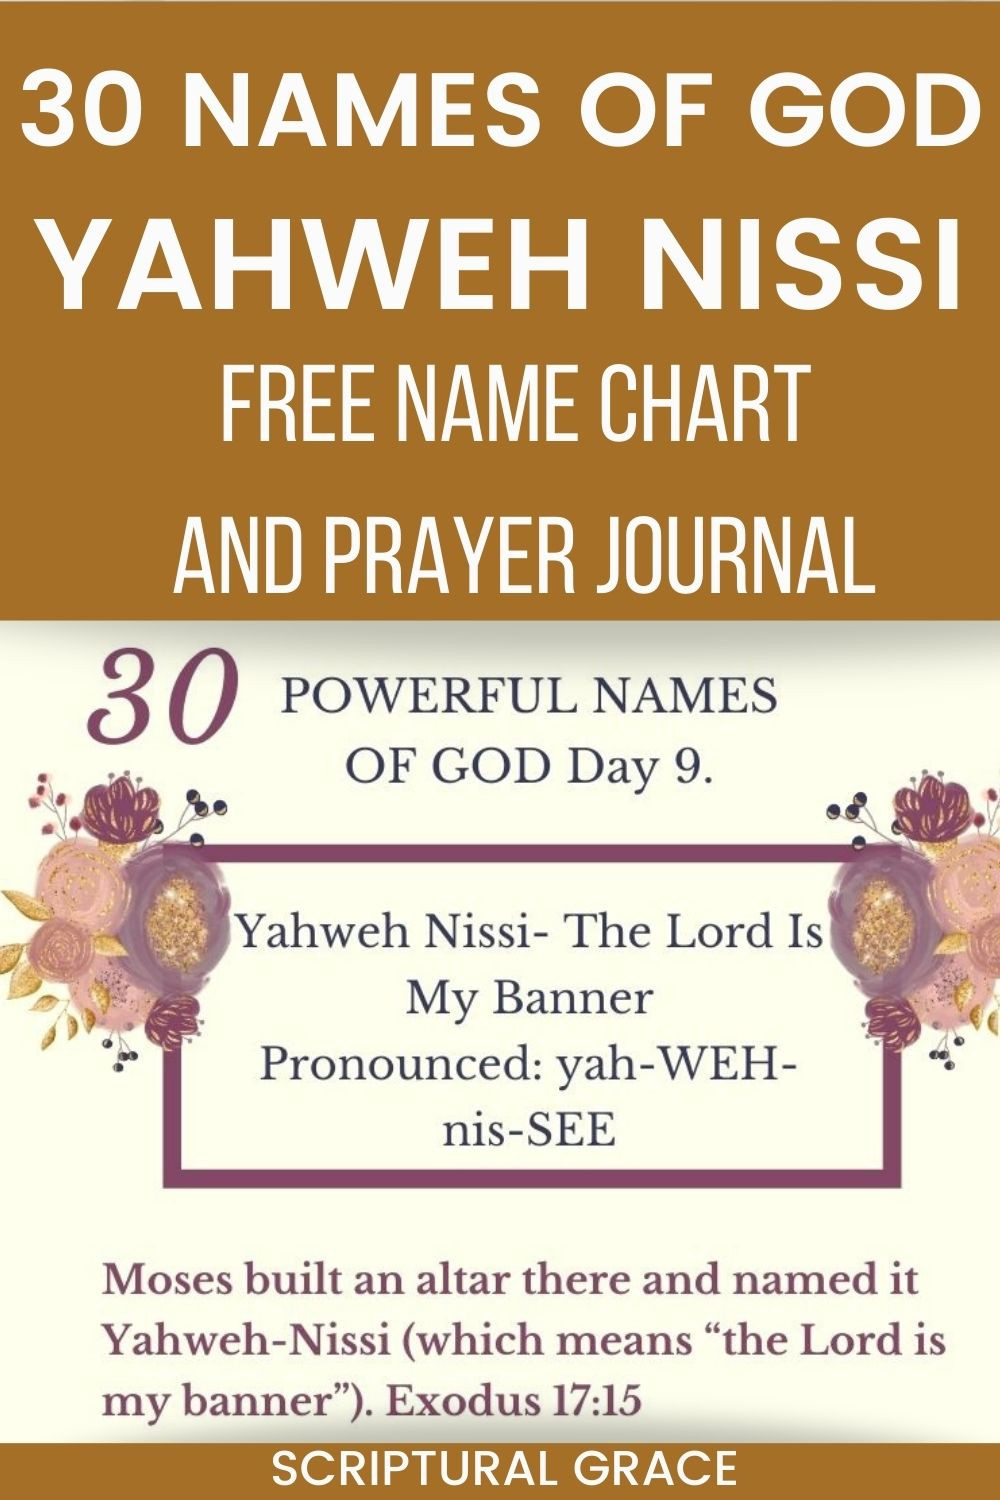 30 Names Of God Yahweh Nissi name chart and prayer journal